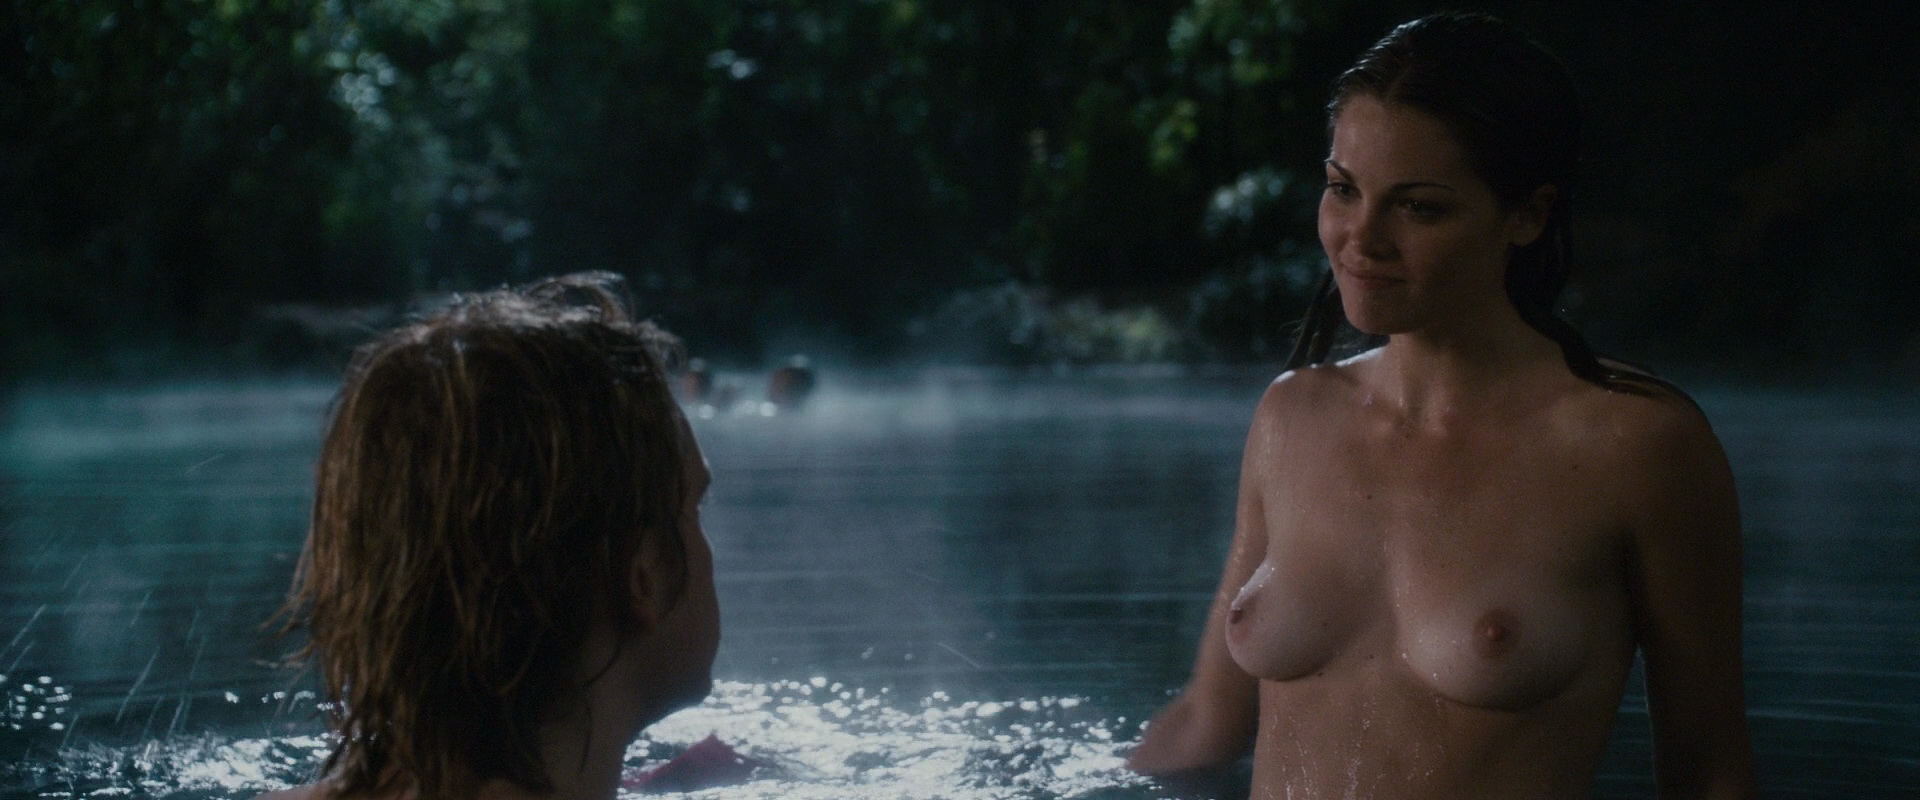 Kate French Nude Scene From Fired Up!